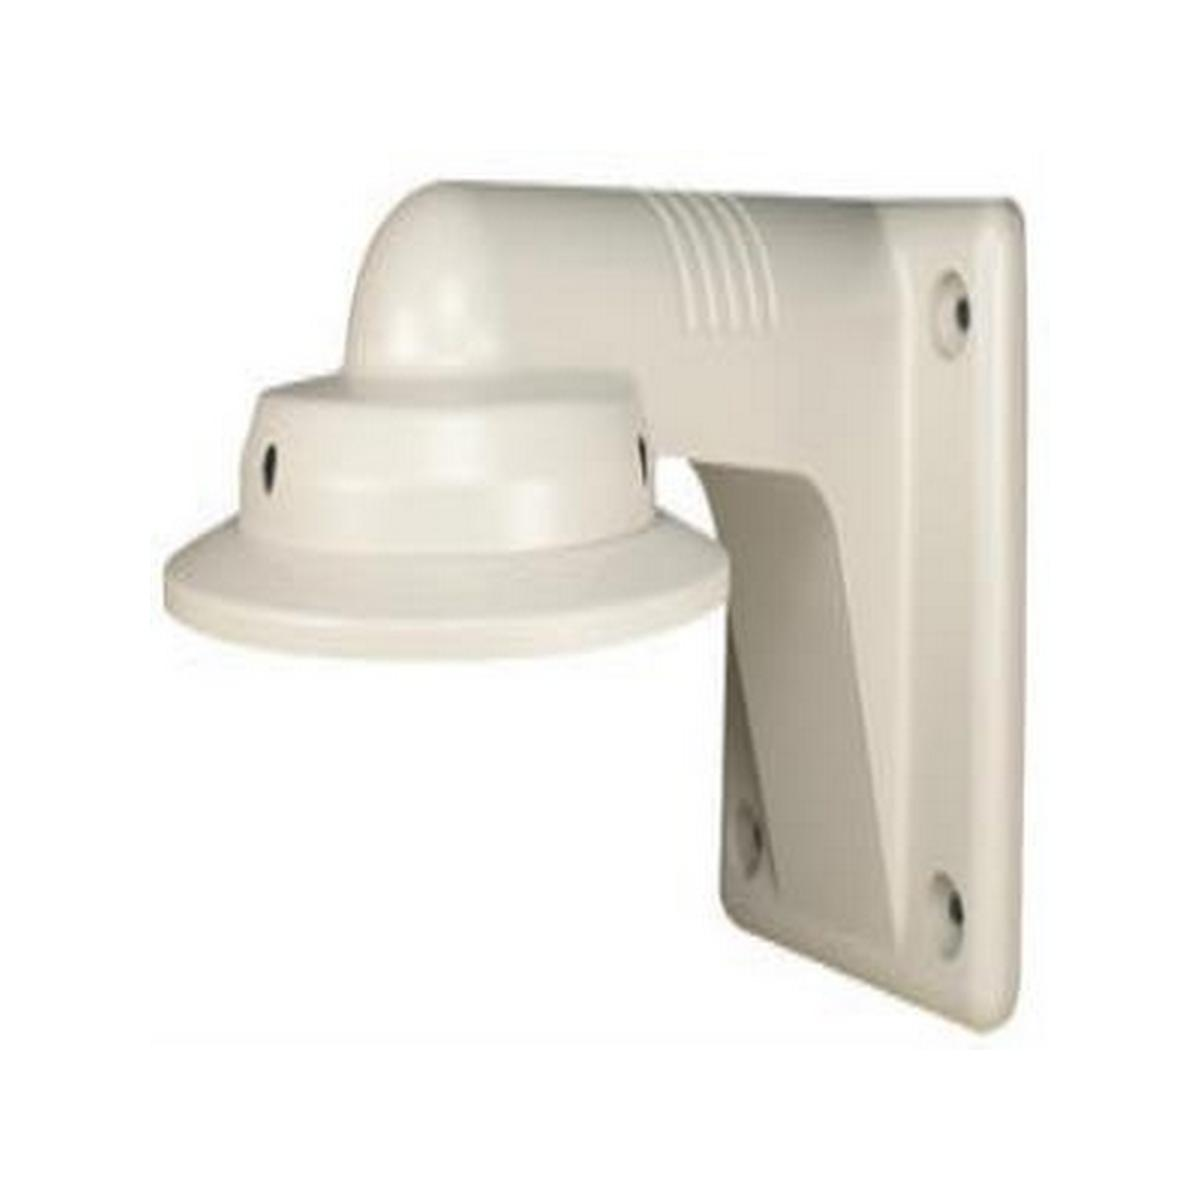 Speco WMSD10X Indoor/ Outdoor Wall Mount for HTSD10X and SIPSD10X